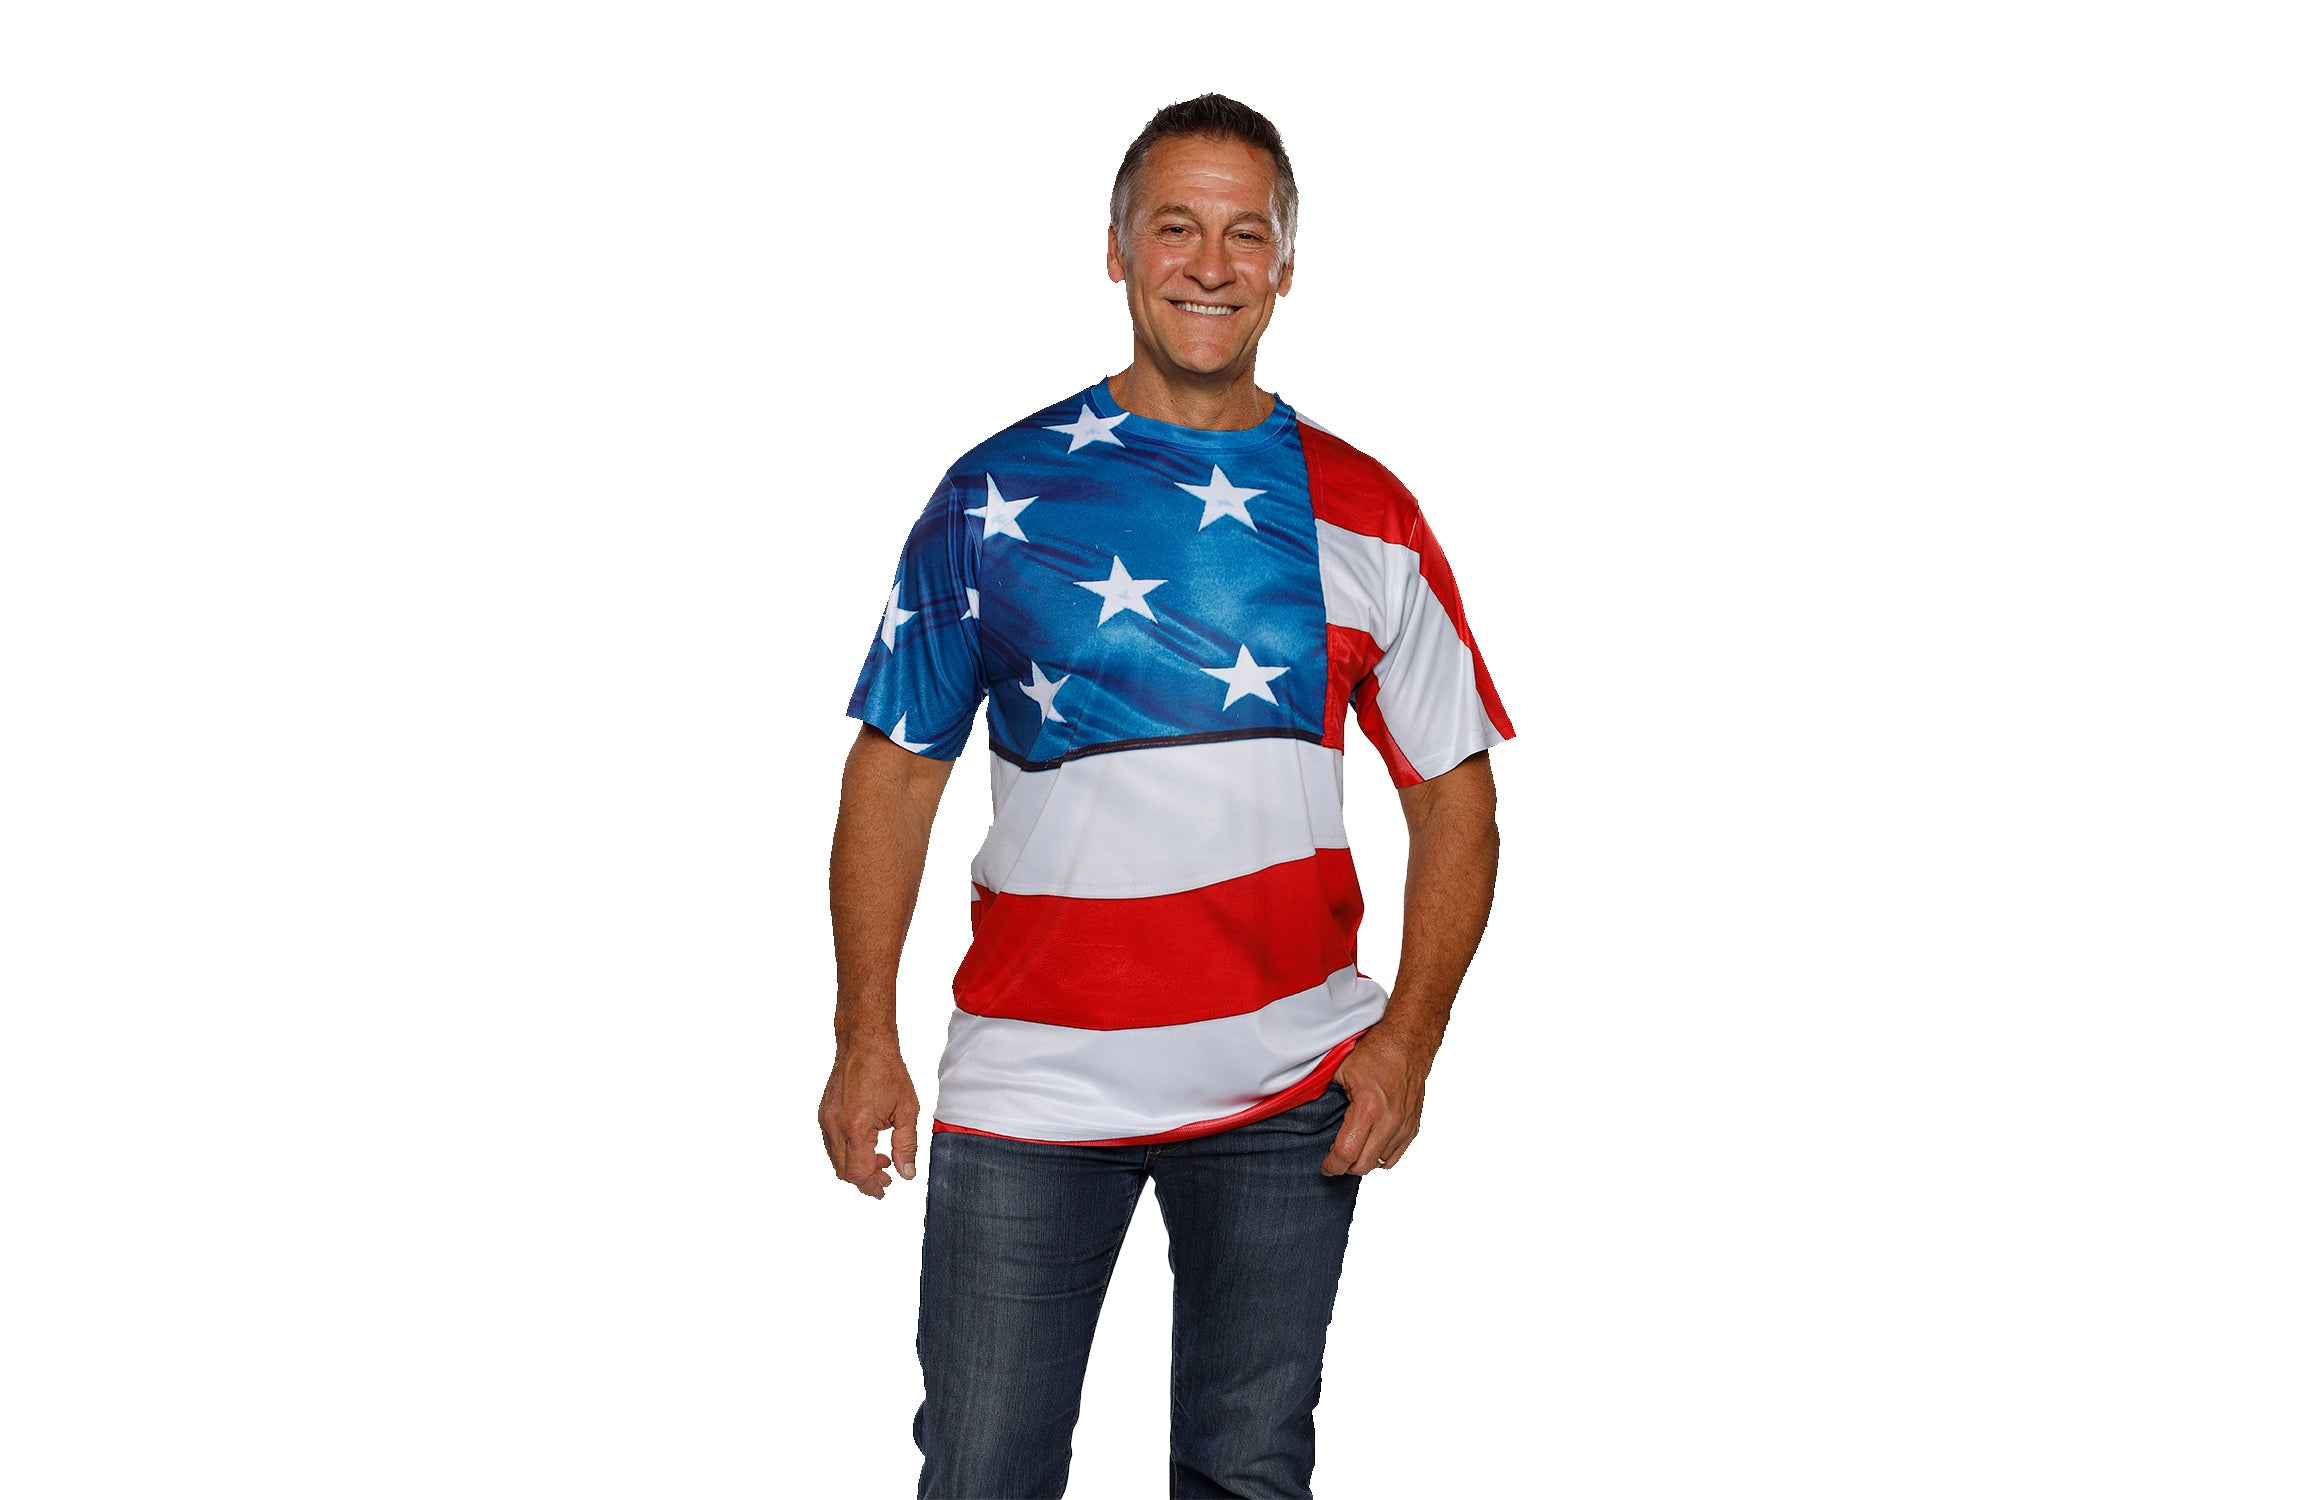 Is It Appropriate to Wear the American Flag as Clothing?